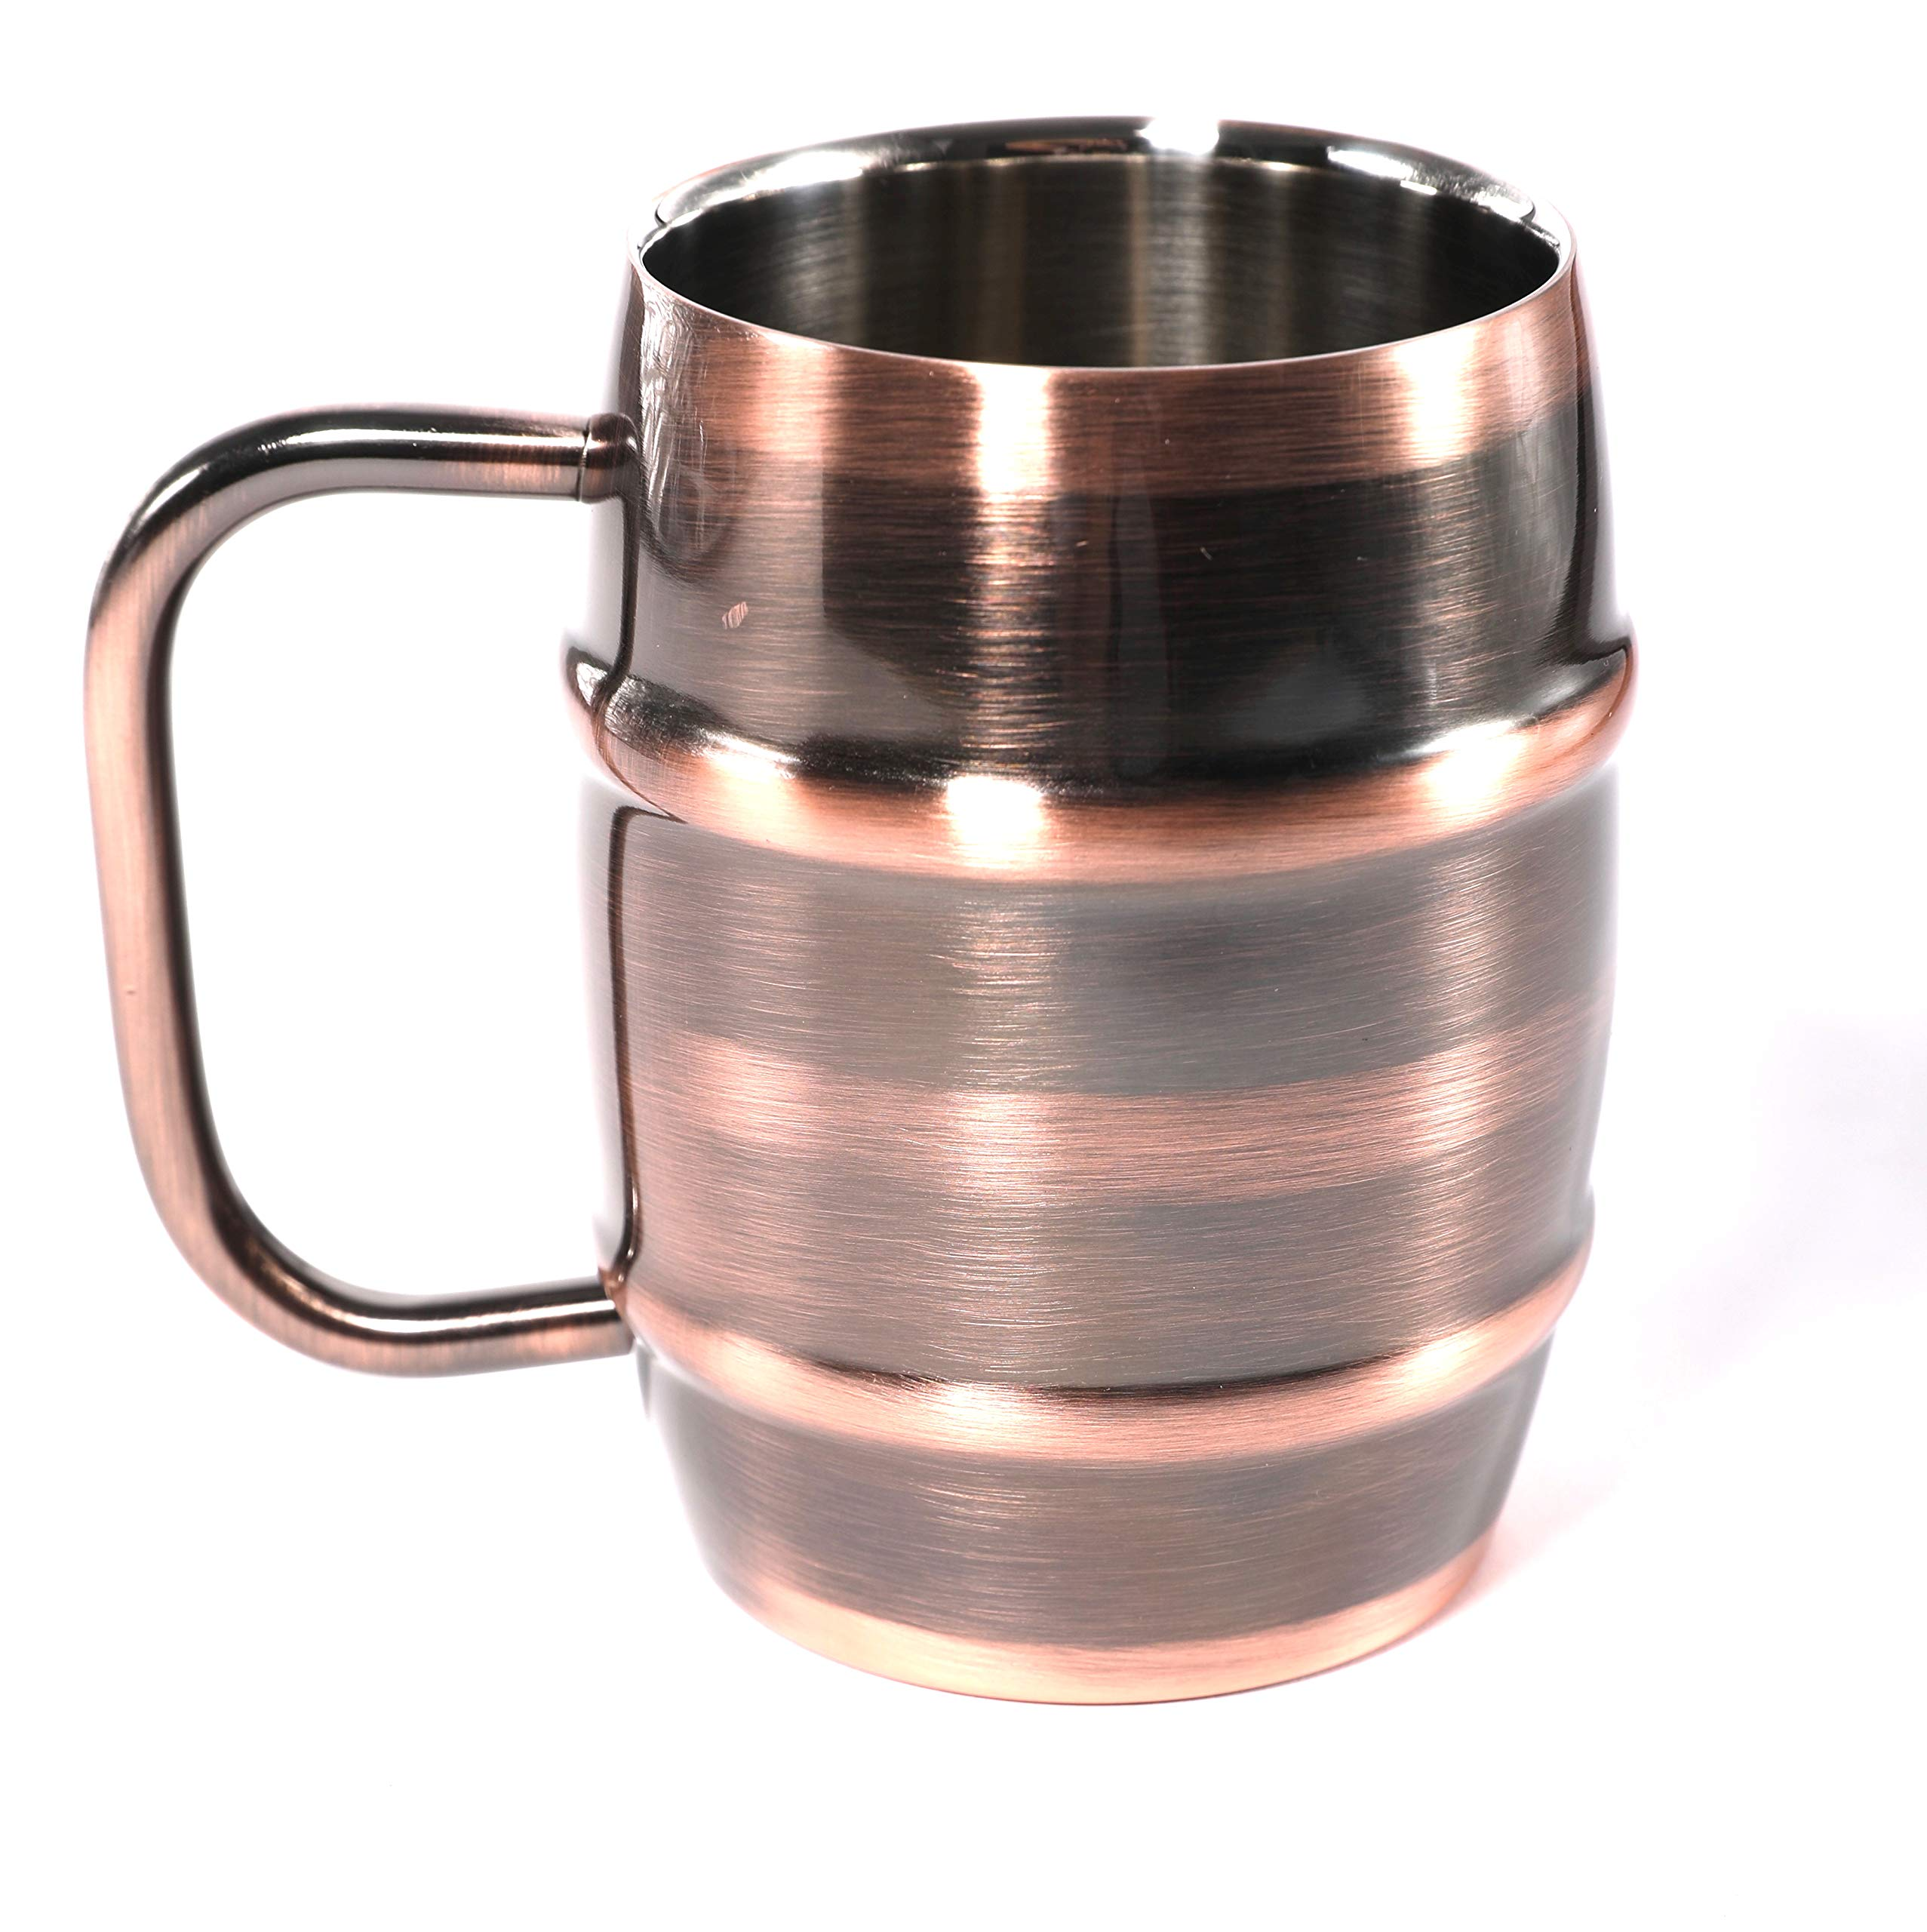 ANVENTI Double Wall Stainless Steel Vacuum Insulated Coffee Mug (Copper) 400ml 14oz 2PCS/CASE